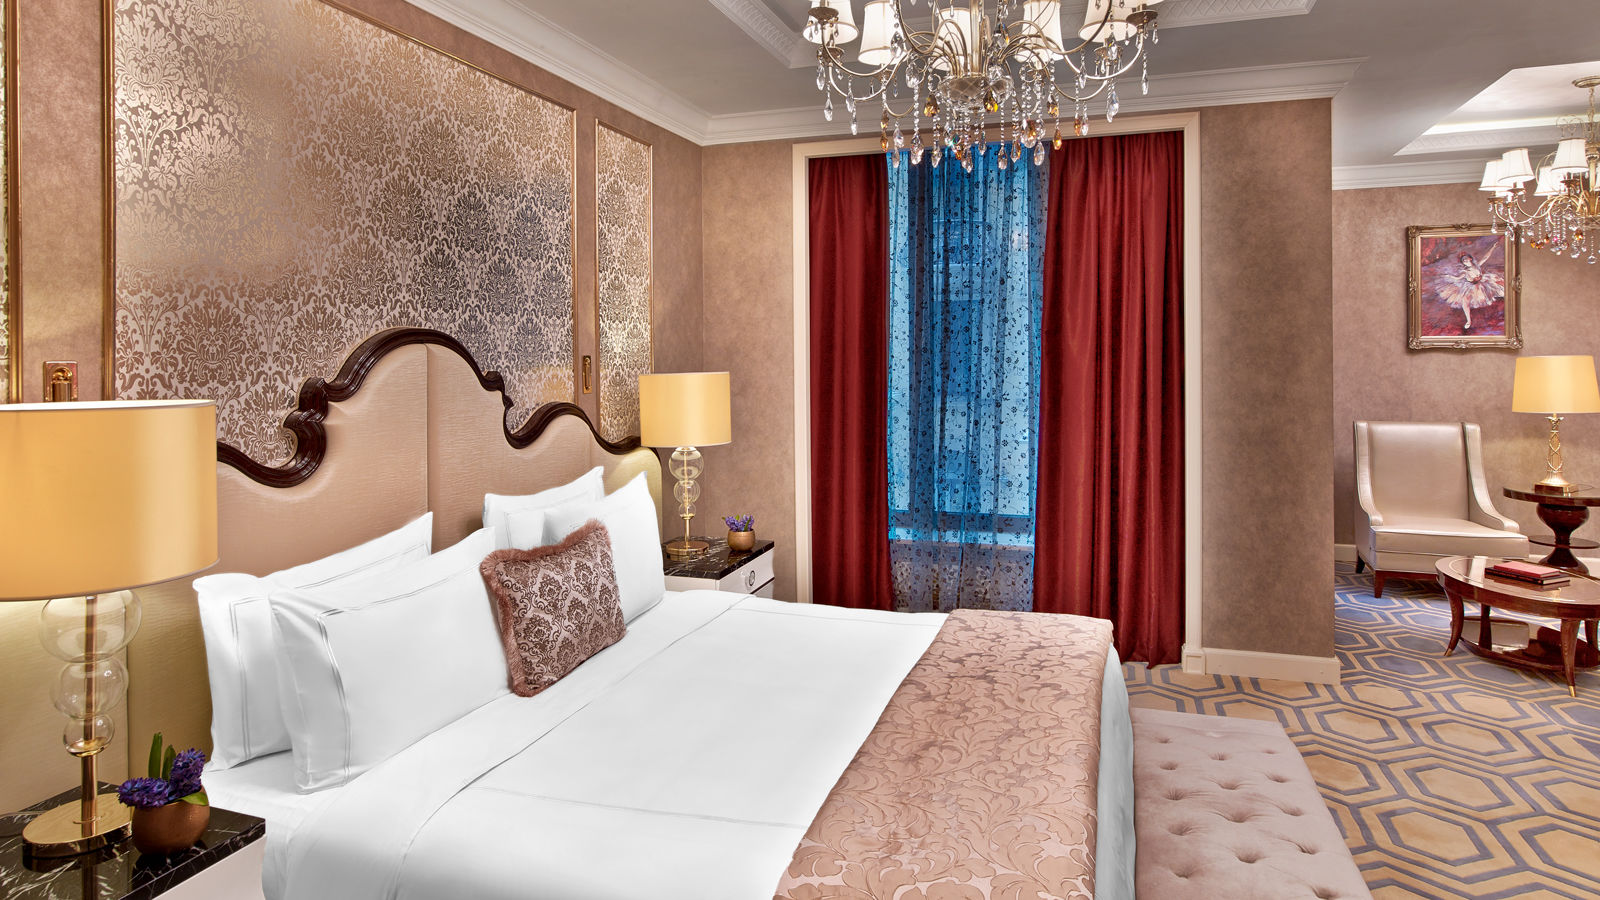 Hotel in Moscow | Moscow Accomodations | St. Regis Suite